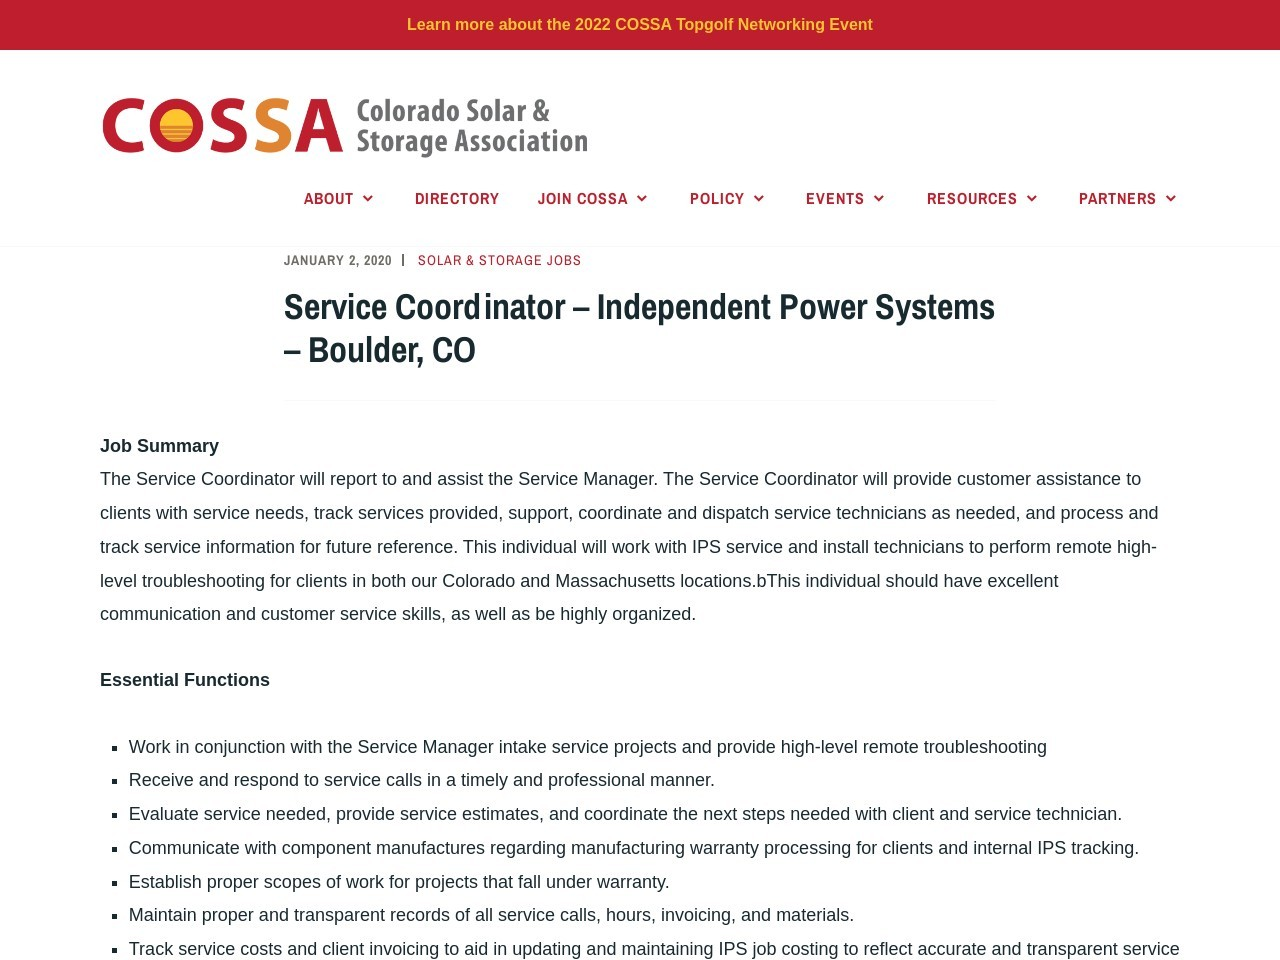 Service Coordinator – Independent Power Systems – Boulder, CO